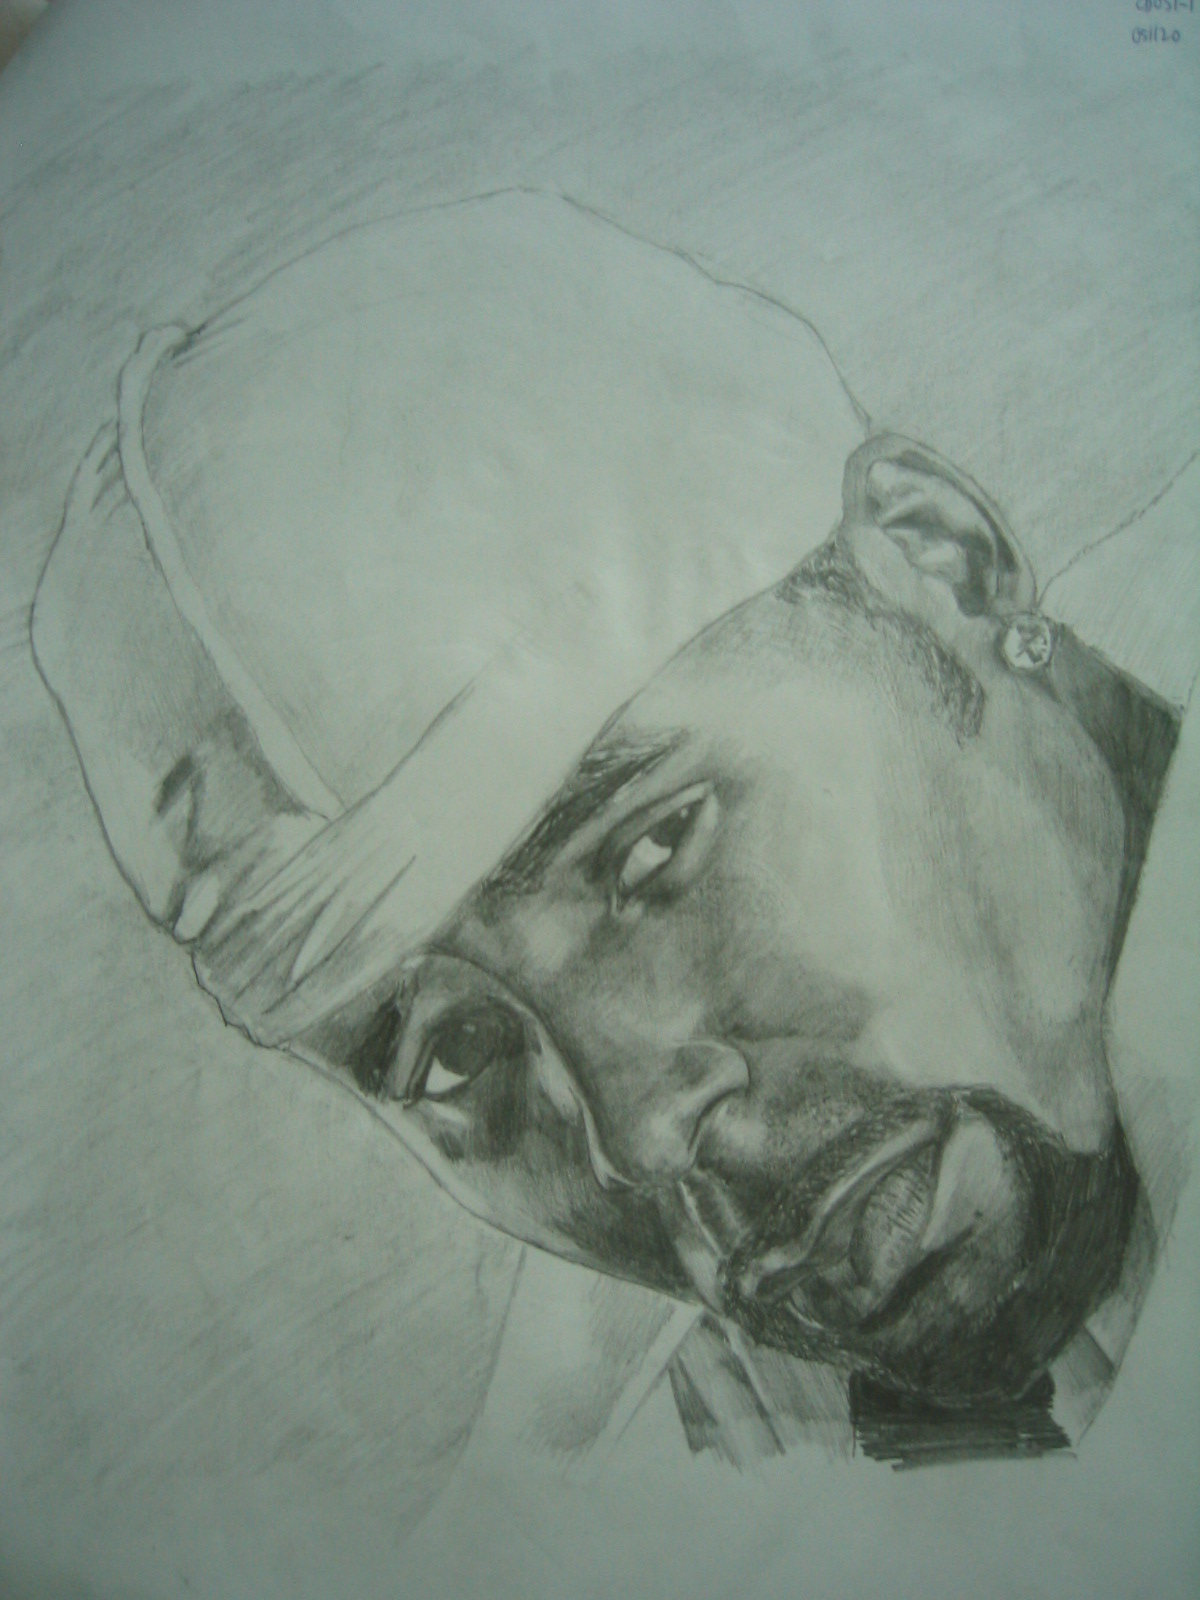 Pencil drawing of r kelly by sketchboy87